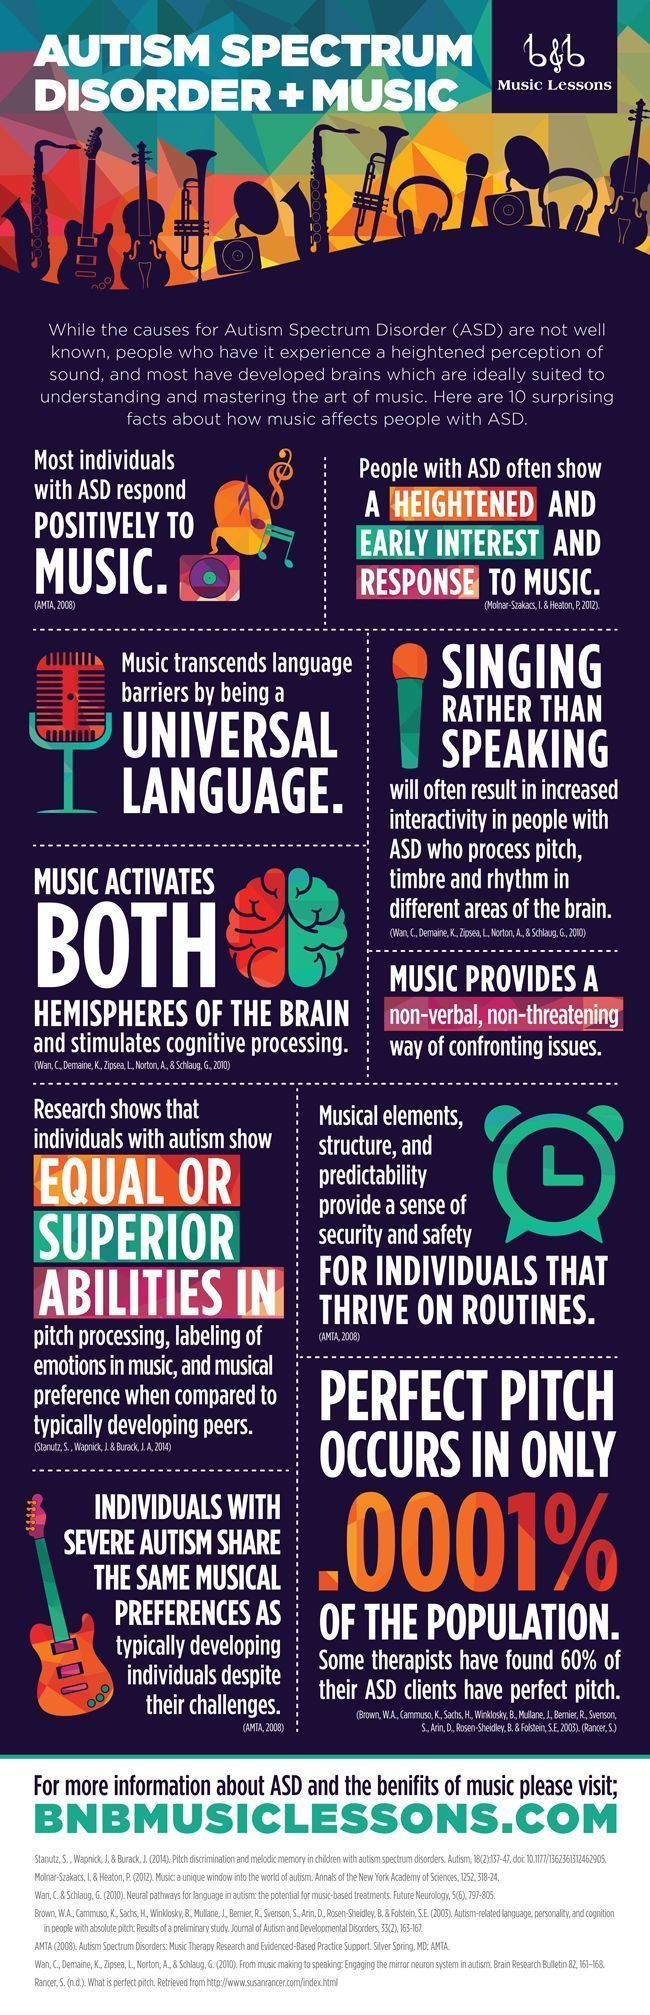 Infographic about autism spectrum disorder and music.